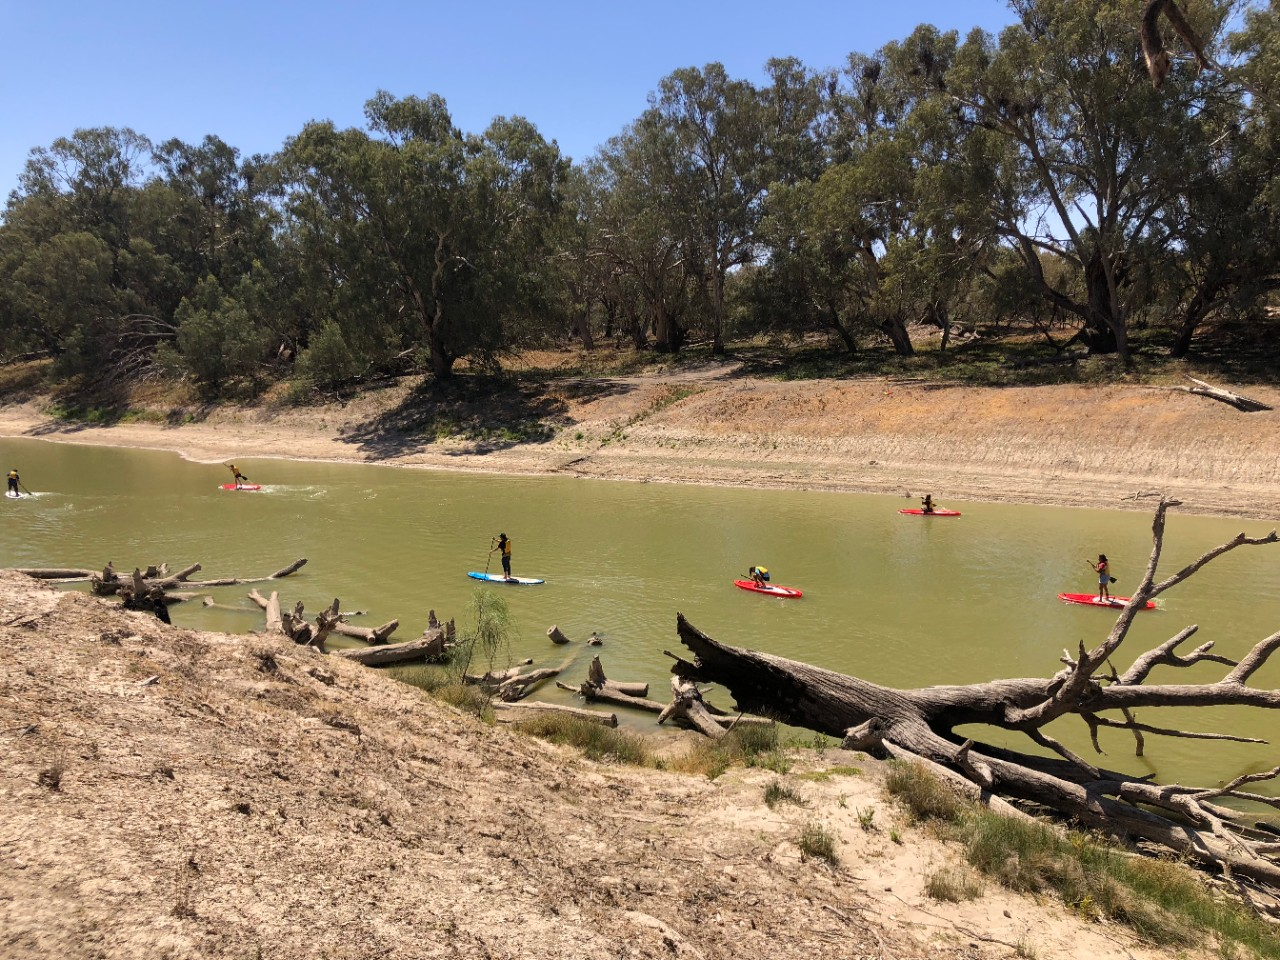 Secondary students paddle boarding on the Baaka (Darling River)